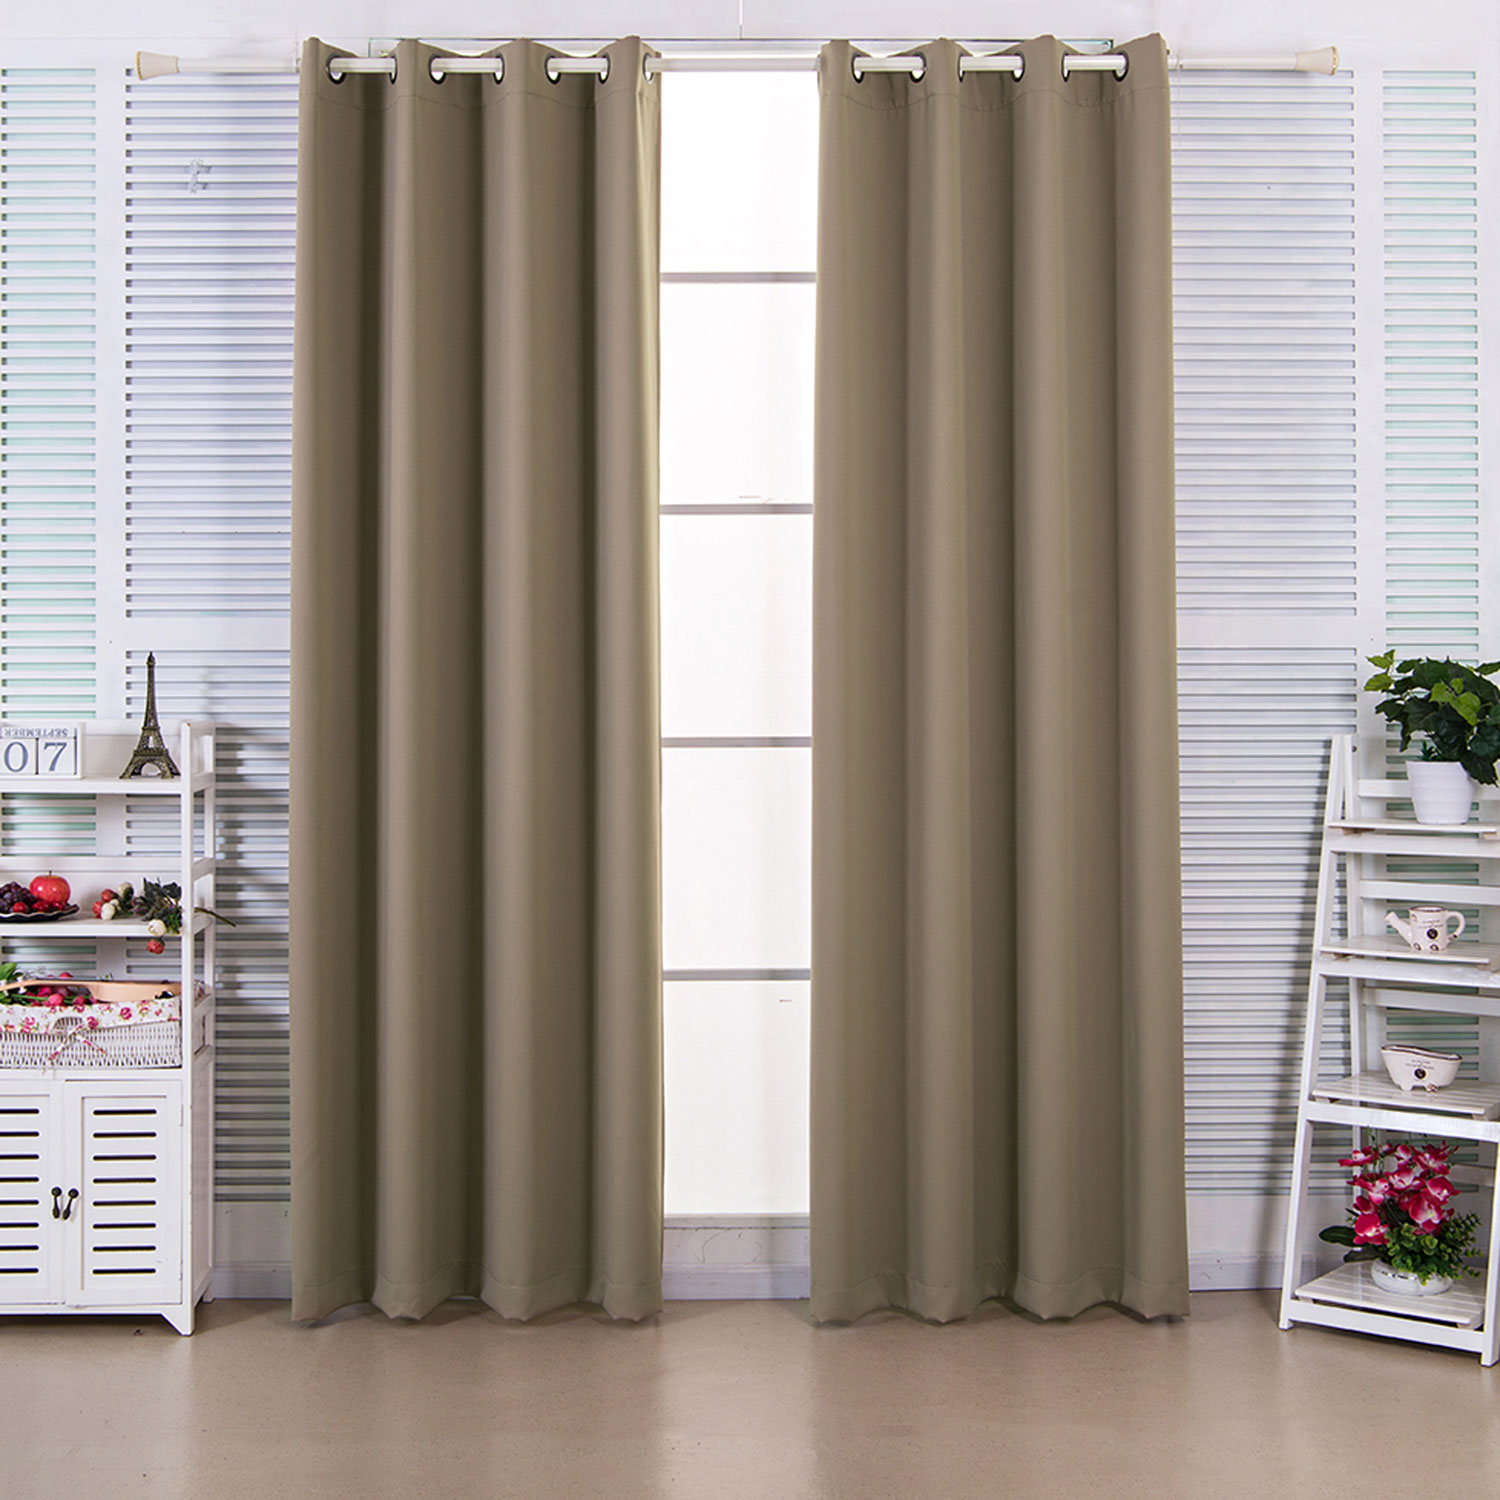 Curtains & Drapes Category